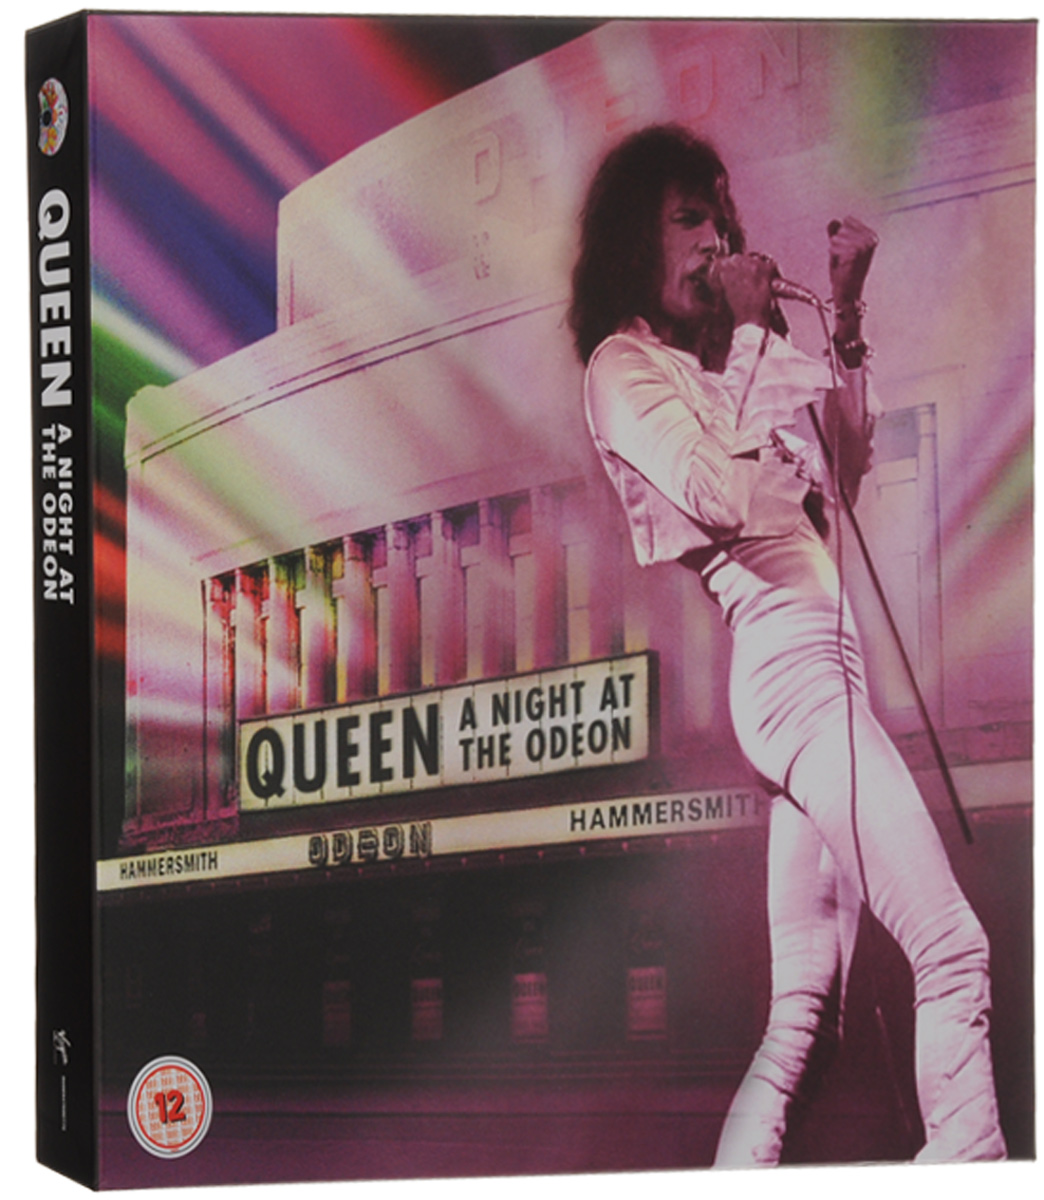 Queen Queen. A Night At The Odeon. Anniversary Limited Edition (CD + LP + DVD + Blu-ray) cd queen a night at the opera 2011 remastered